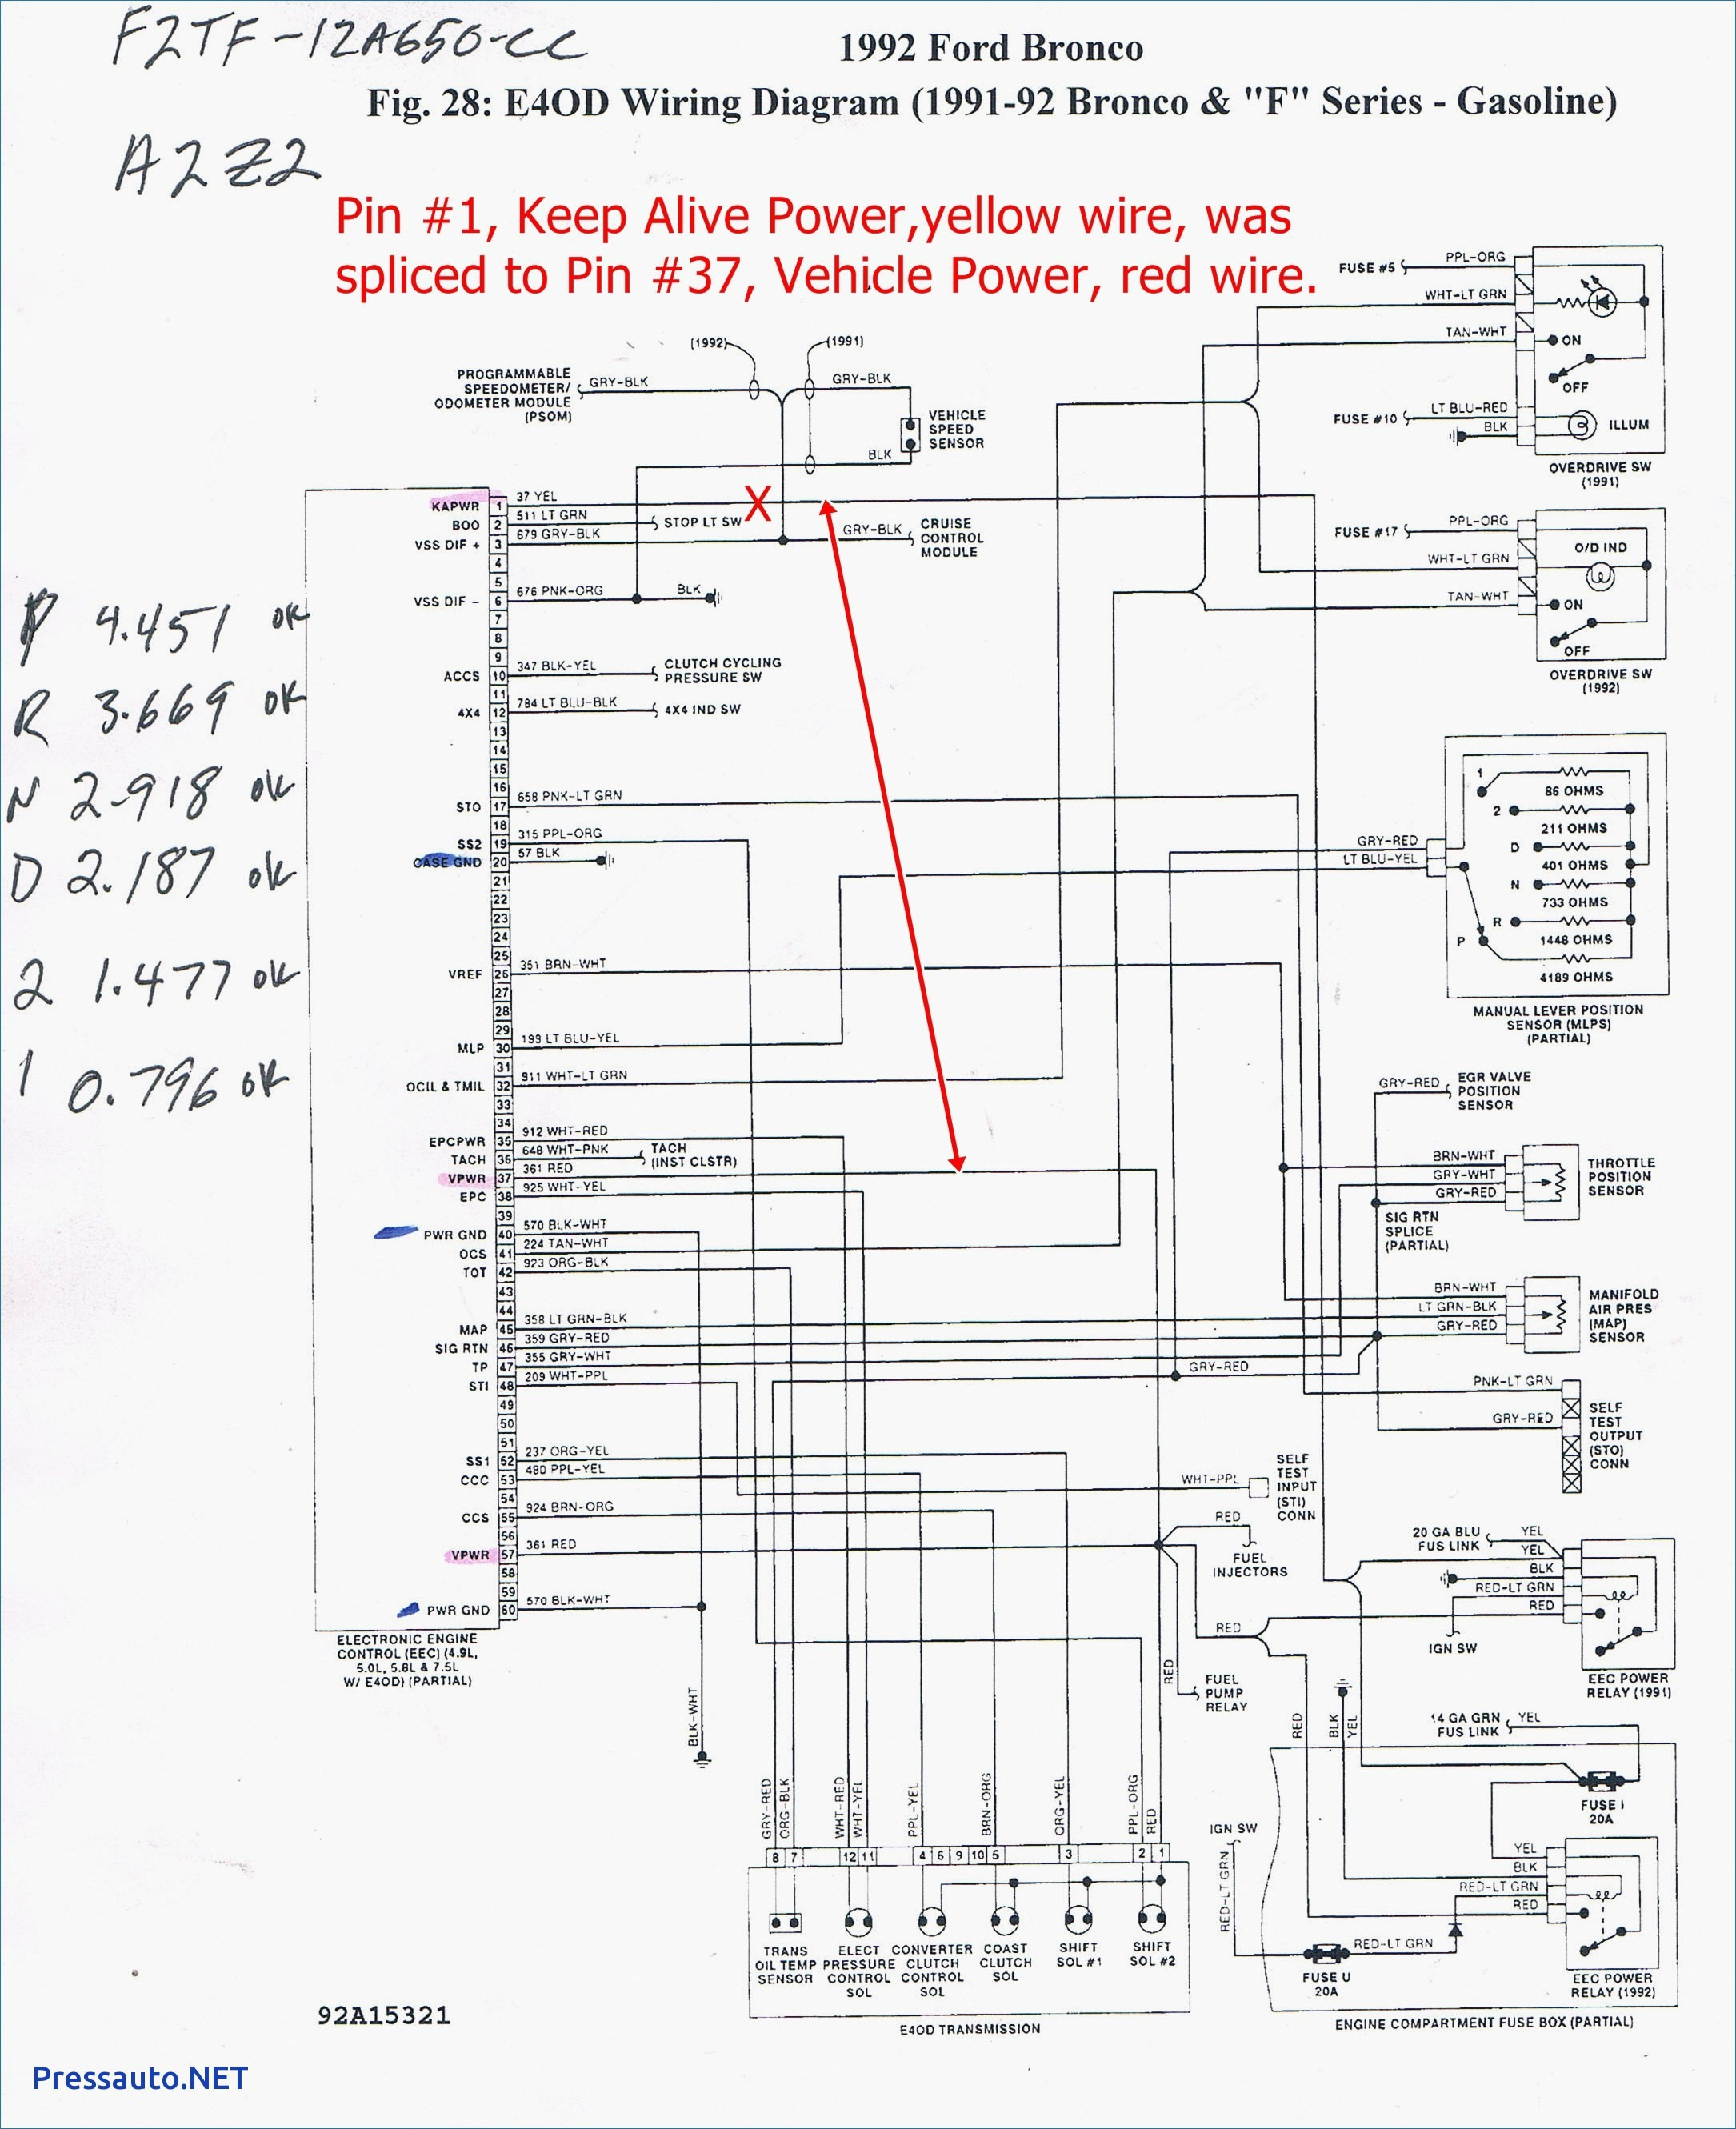 2001 Dodge Ram 1500 Trailer Wiring Diagram | Trailer ...